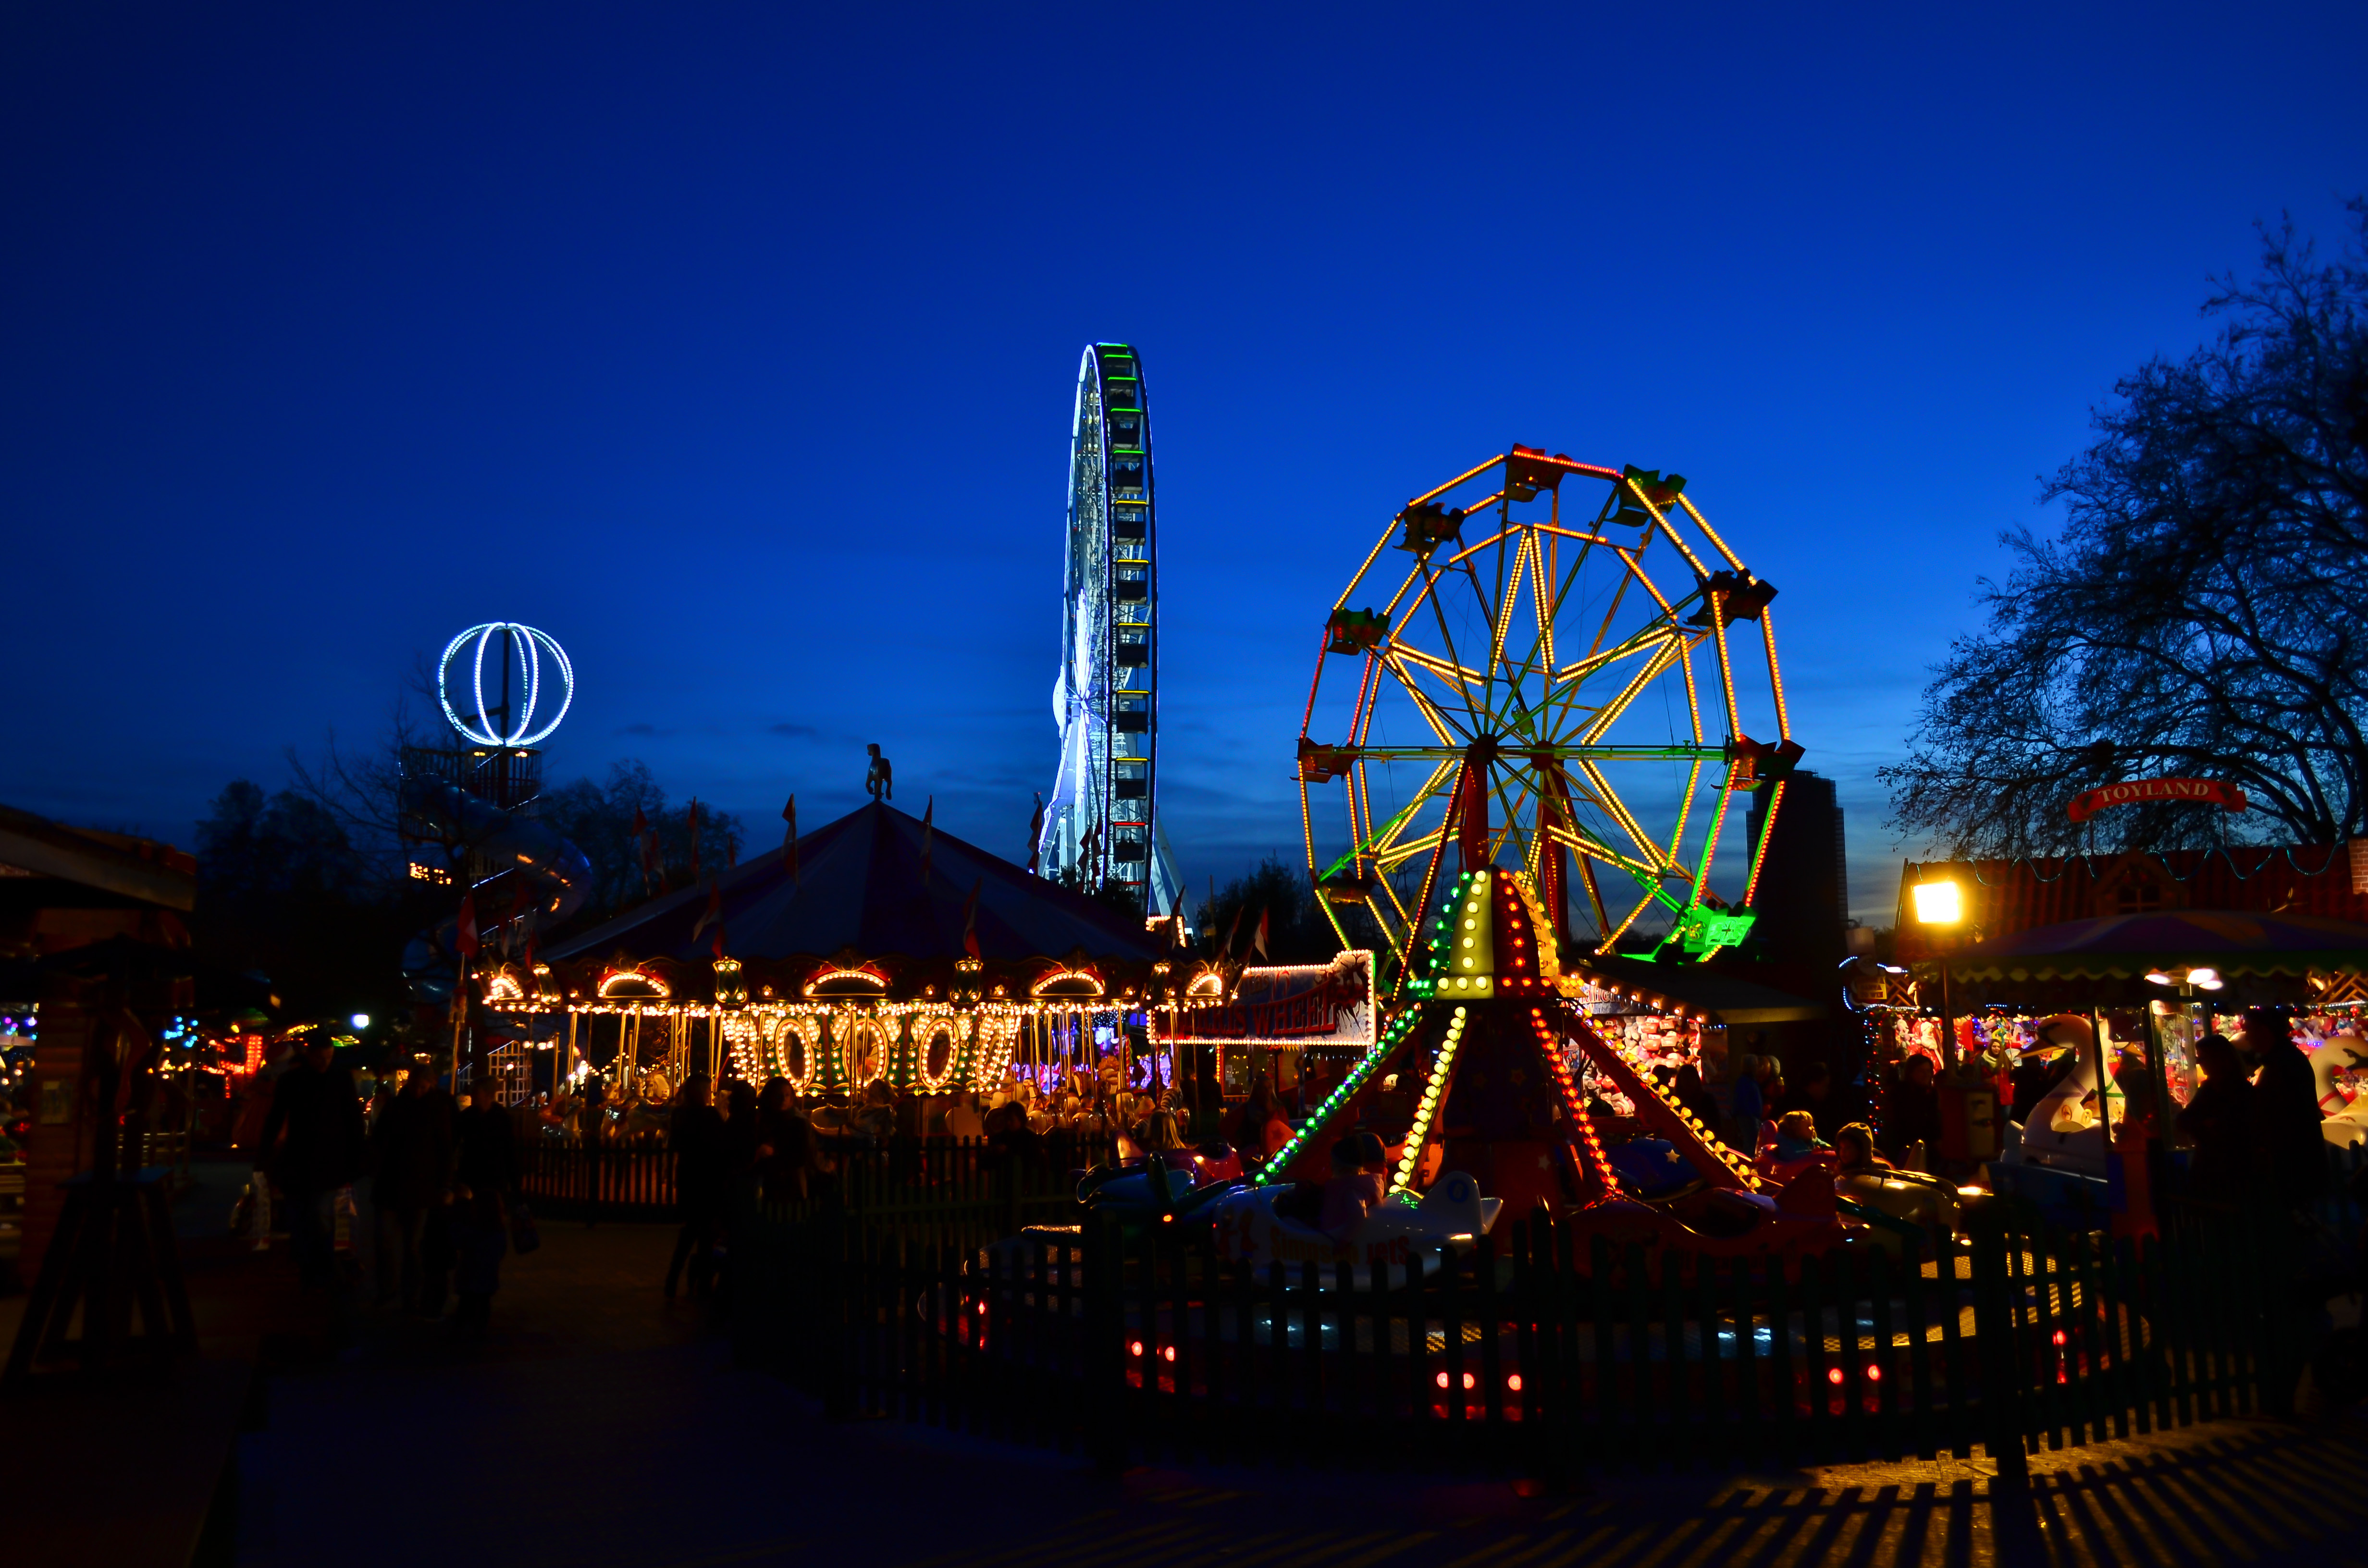 2019 F Type >> File:Hyde Park Winter Wonderland 2011 - 37.jpg - Wikimedia Commons